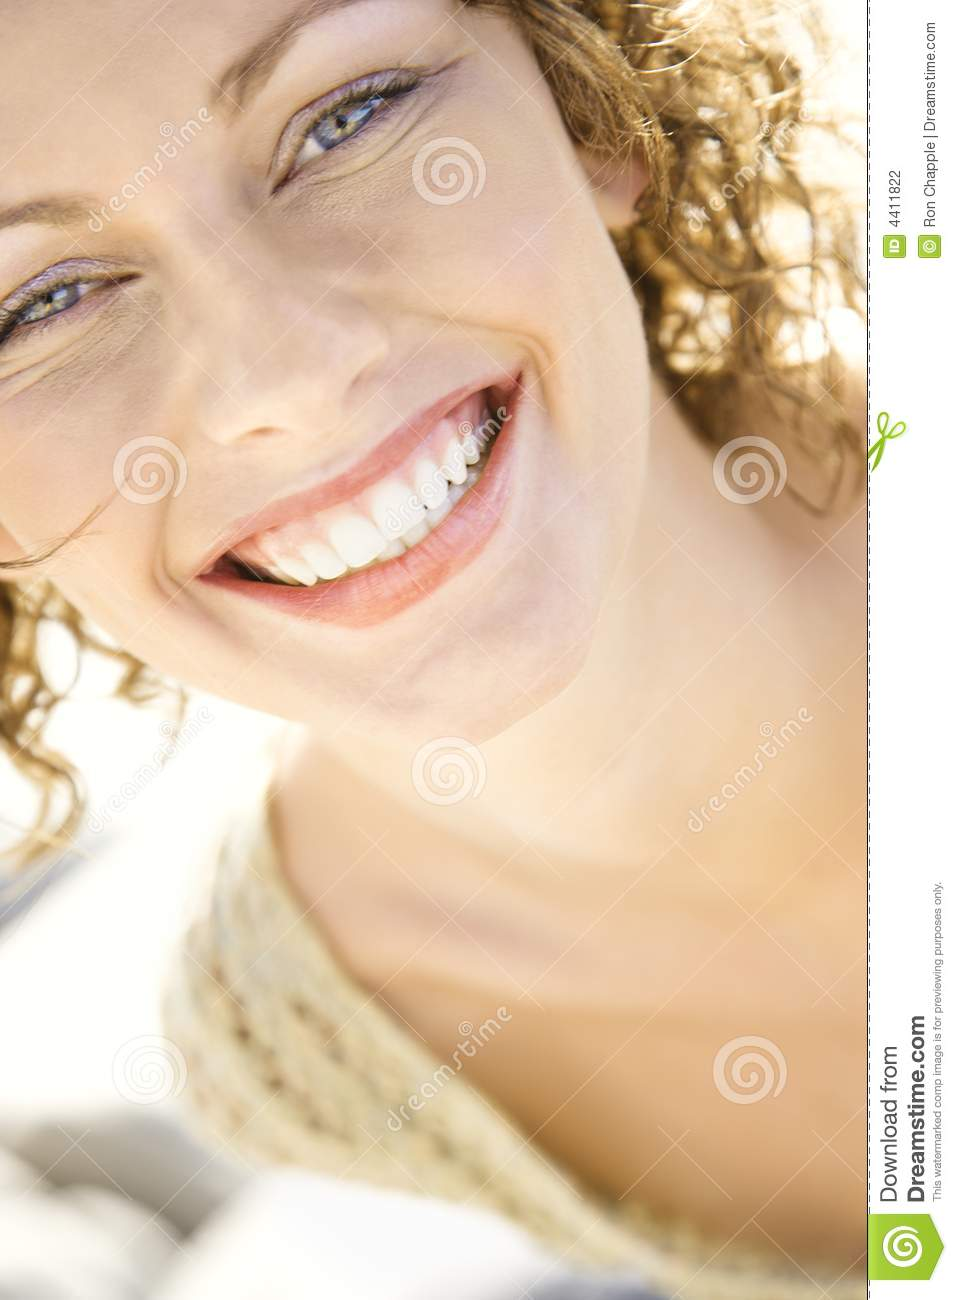 Close-Up Of Womans Smiling Face Stock Photography - Image 4411822-2169